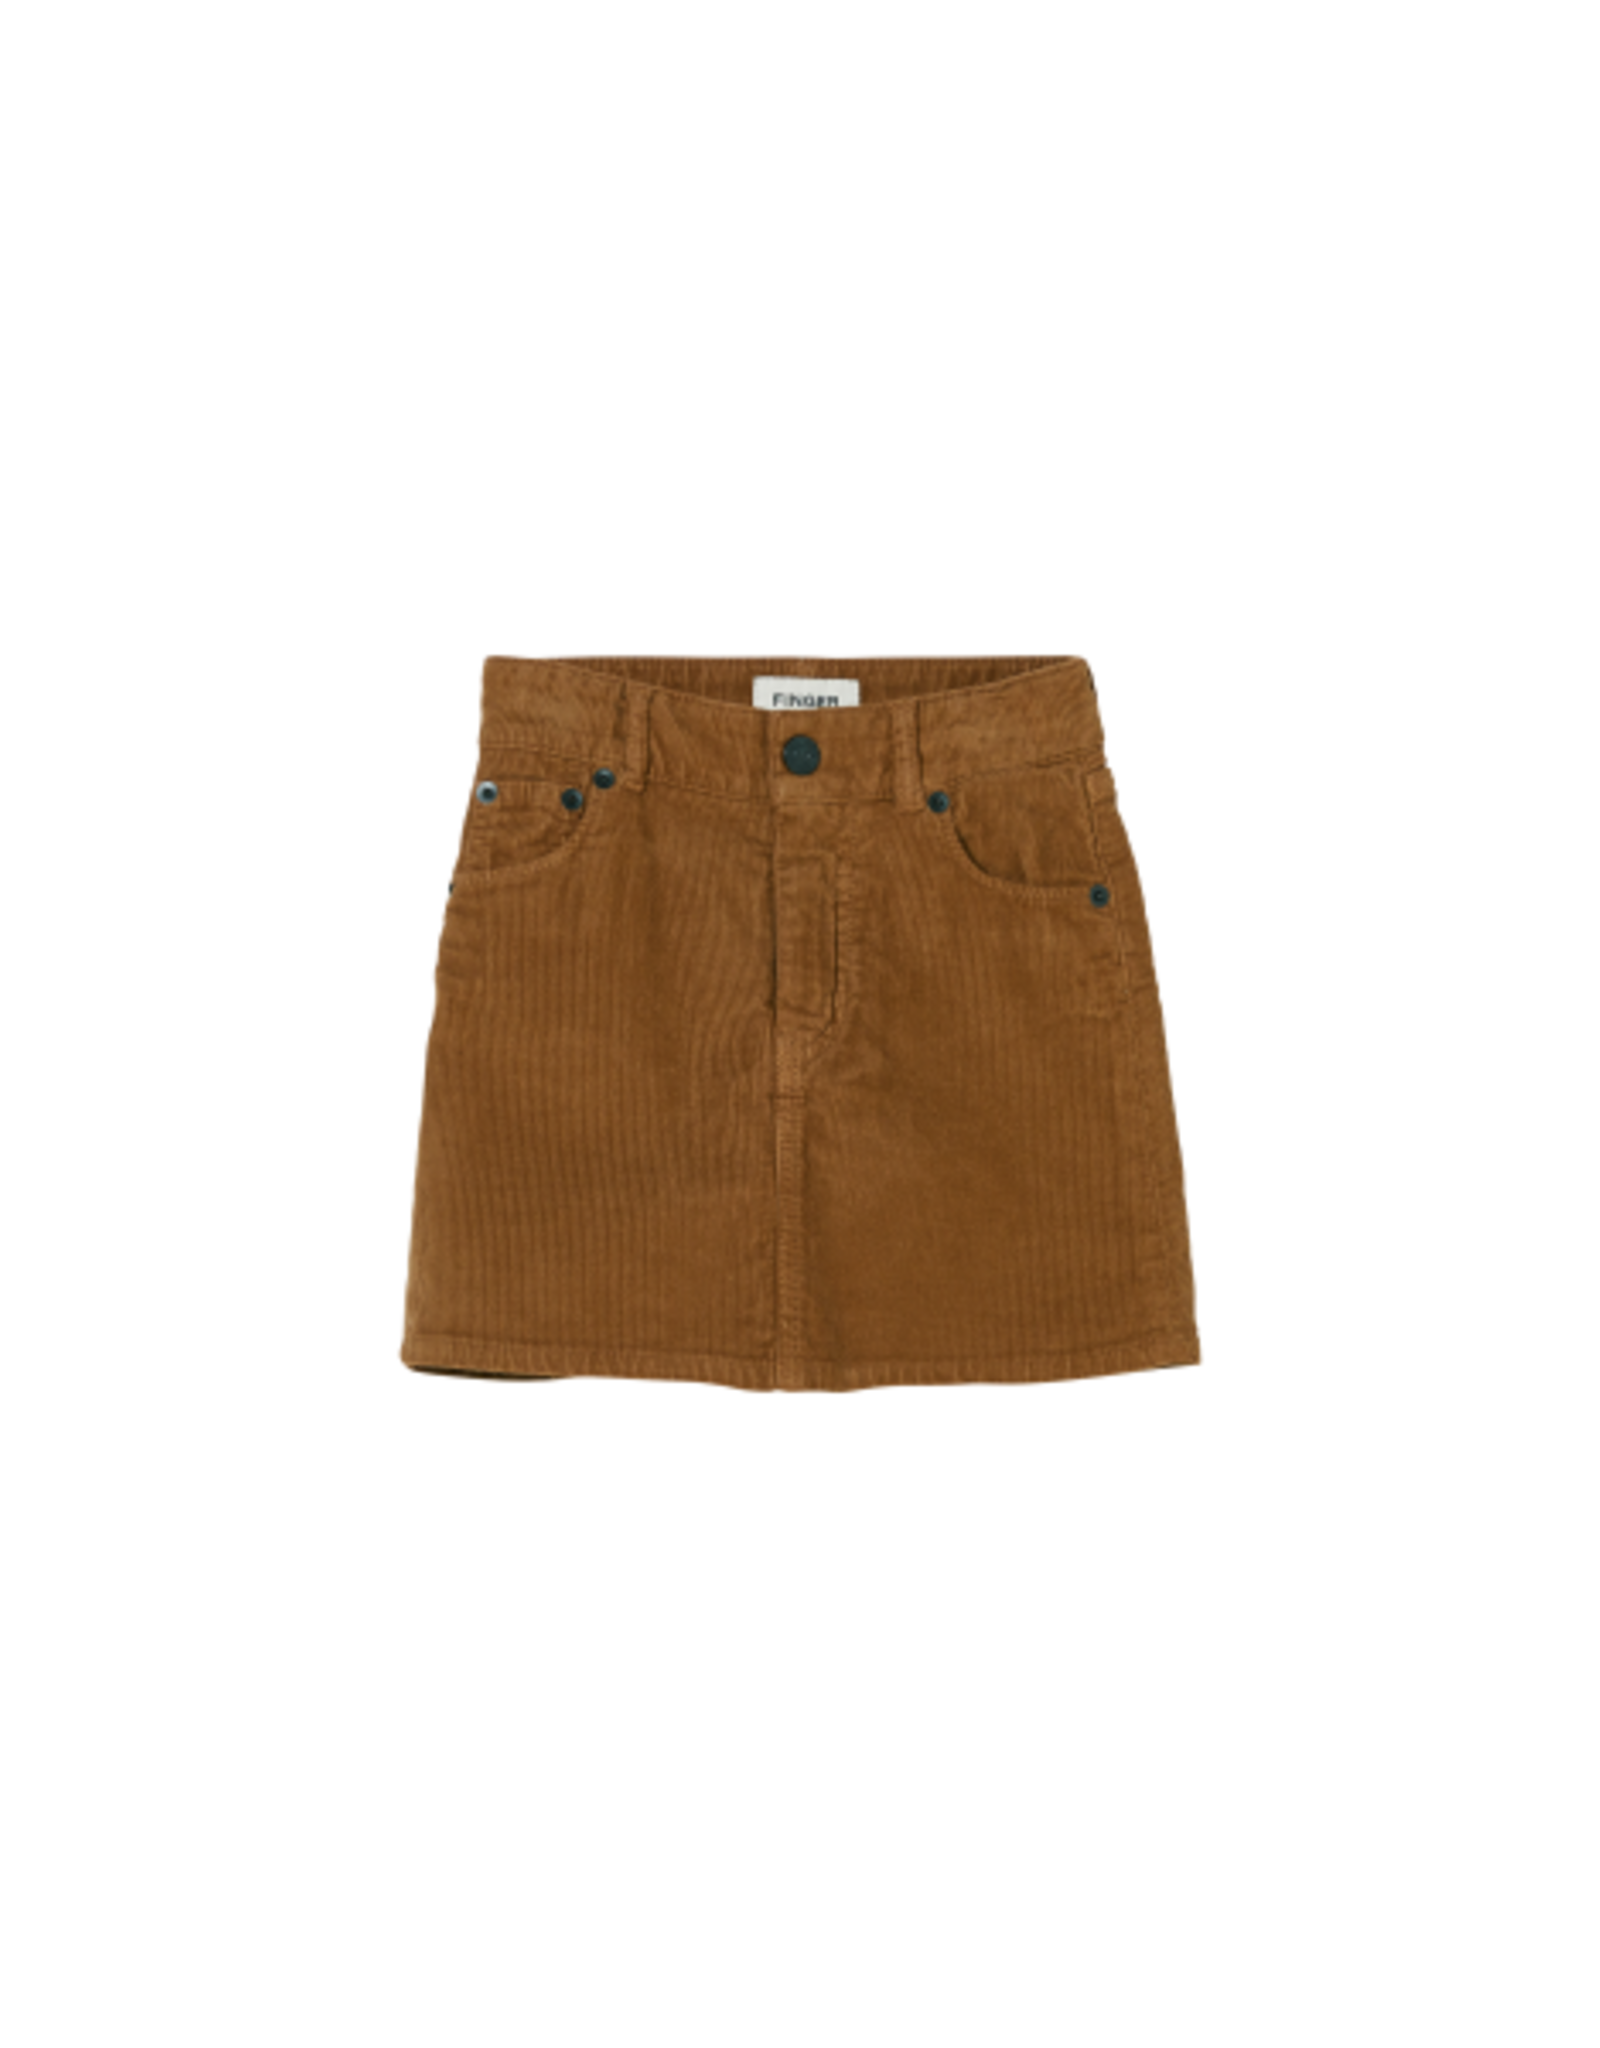 Finger in the Nose Finger in the Nose FW21 Tory tobacco cord skirt